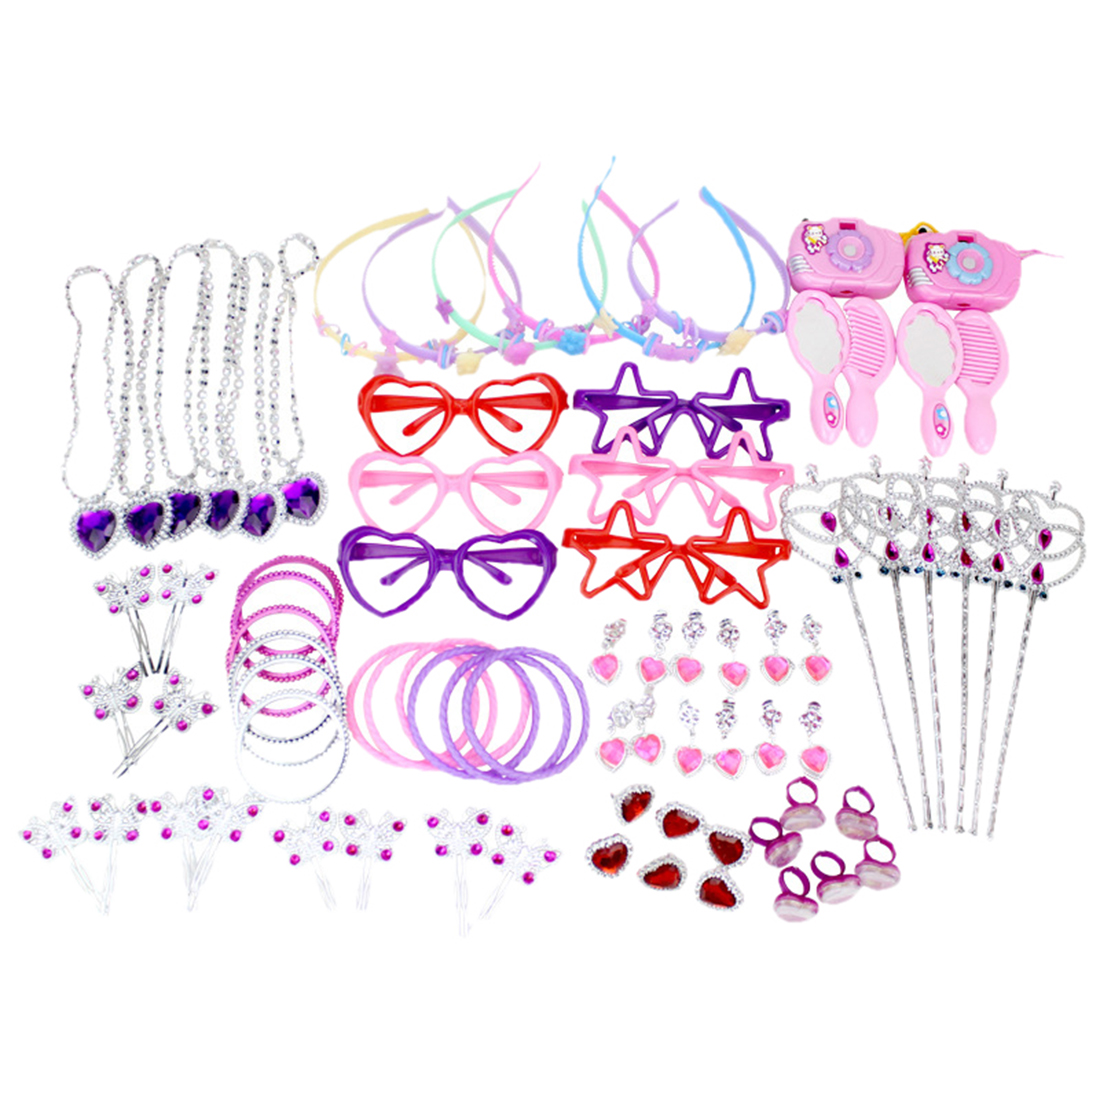 72Pcs Girl Birthday Decoration Toy Set For Pink Party 12 Type Mixed Heart Head Ring Butterfly Hairpin Hair Band Camera Toys Set